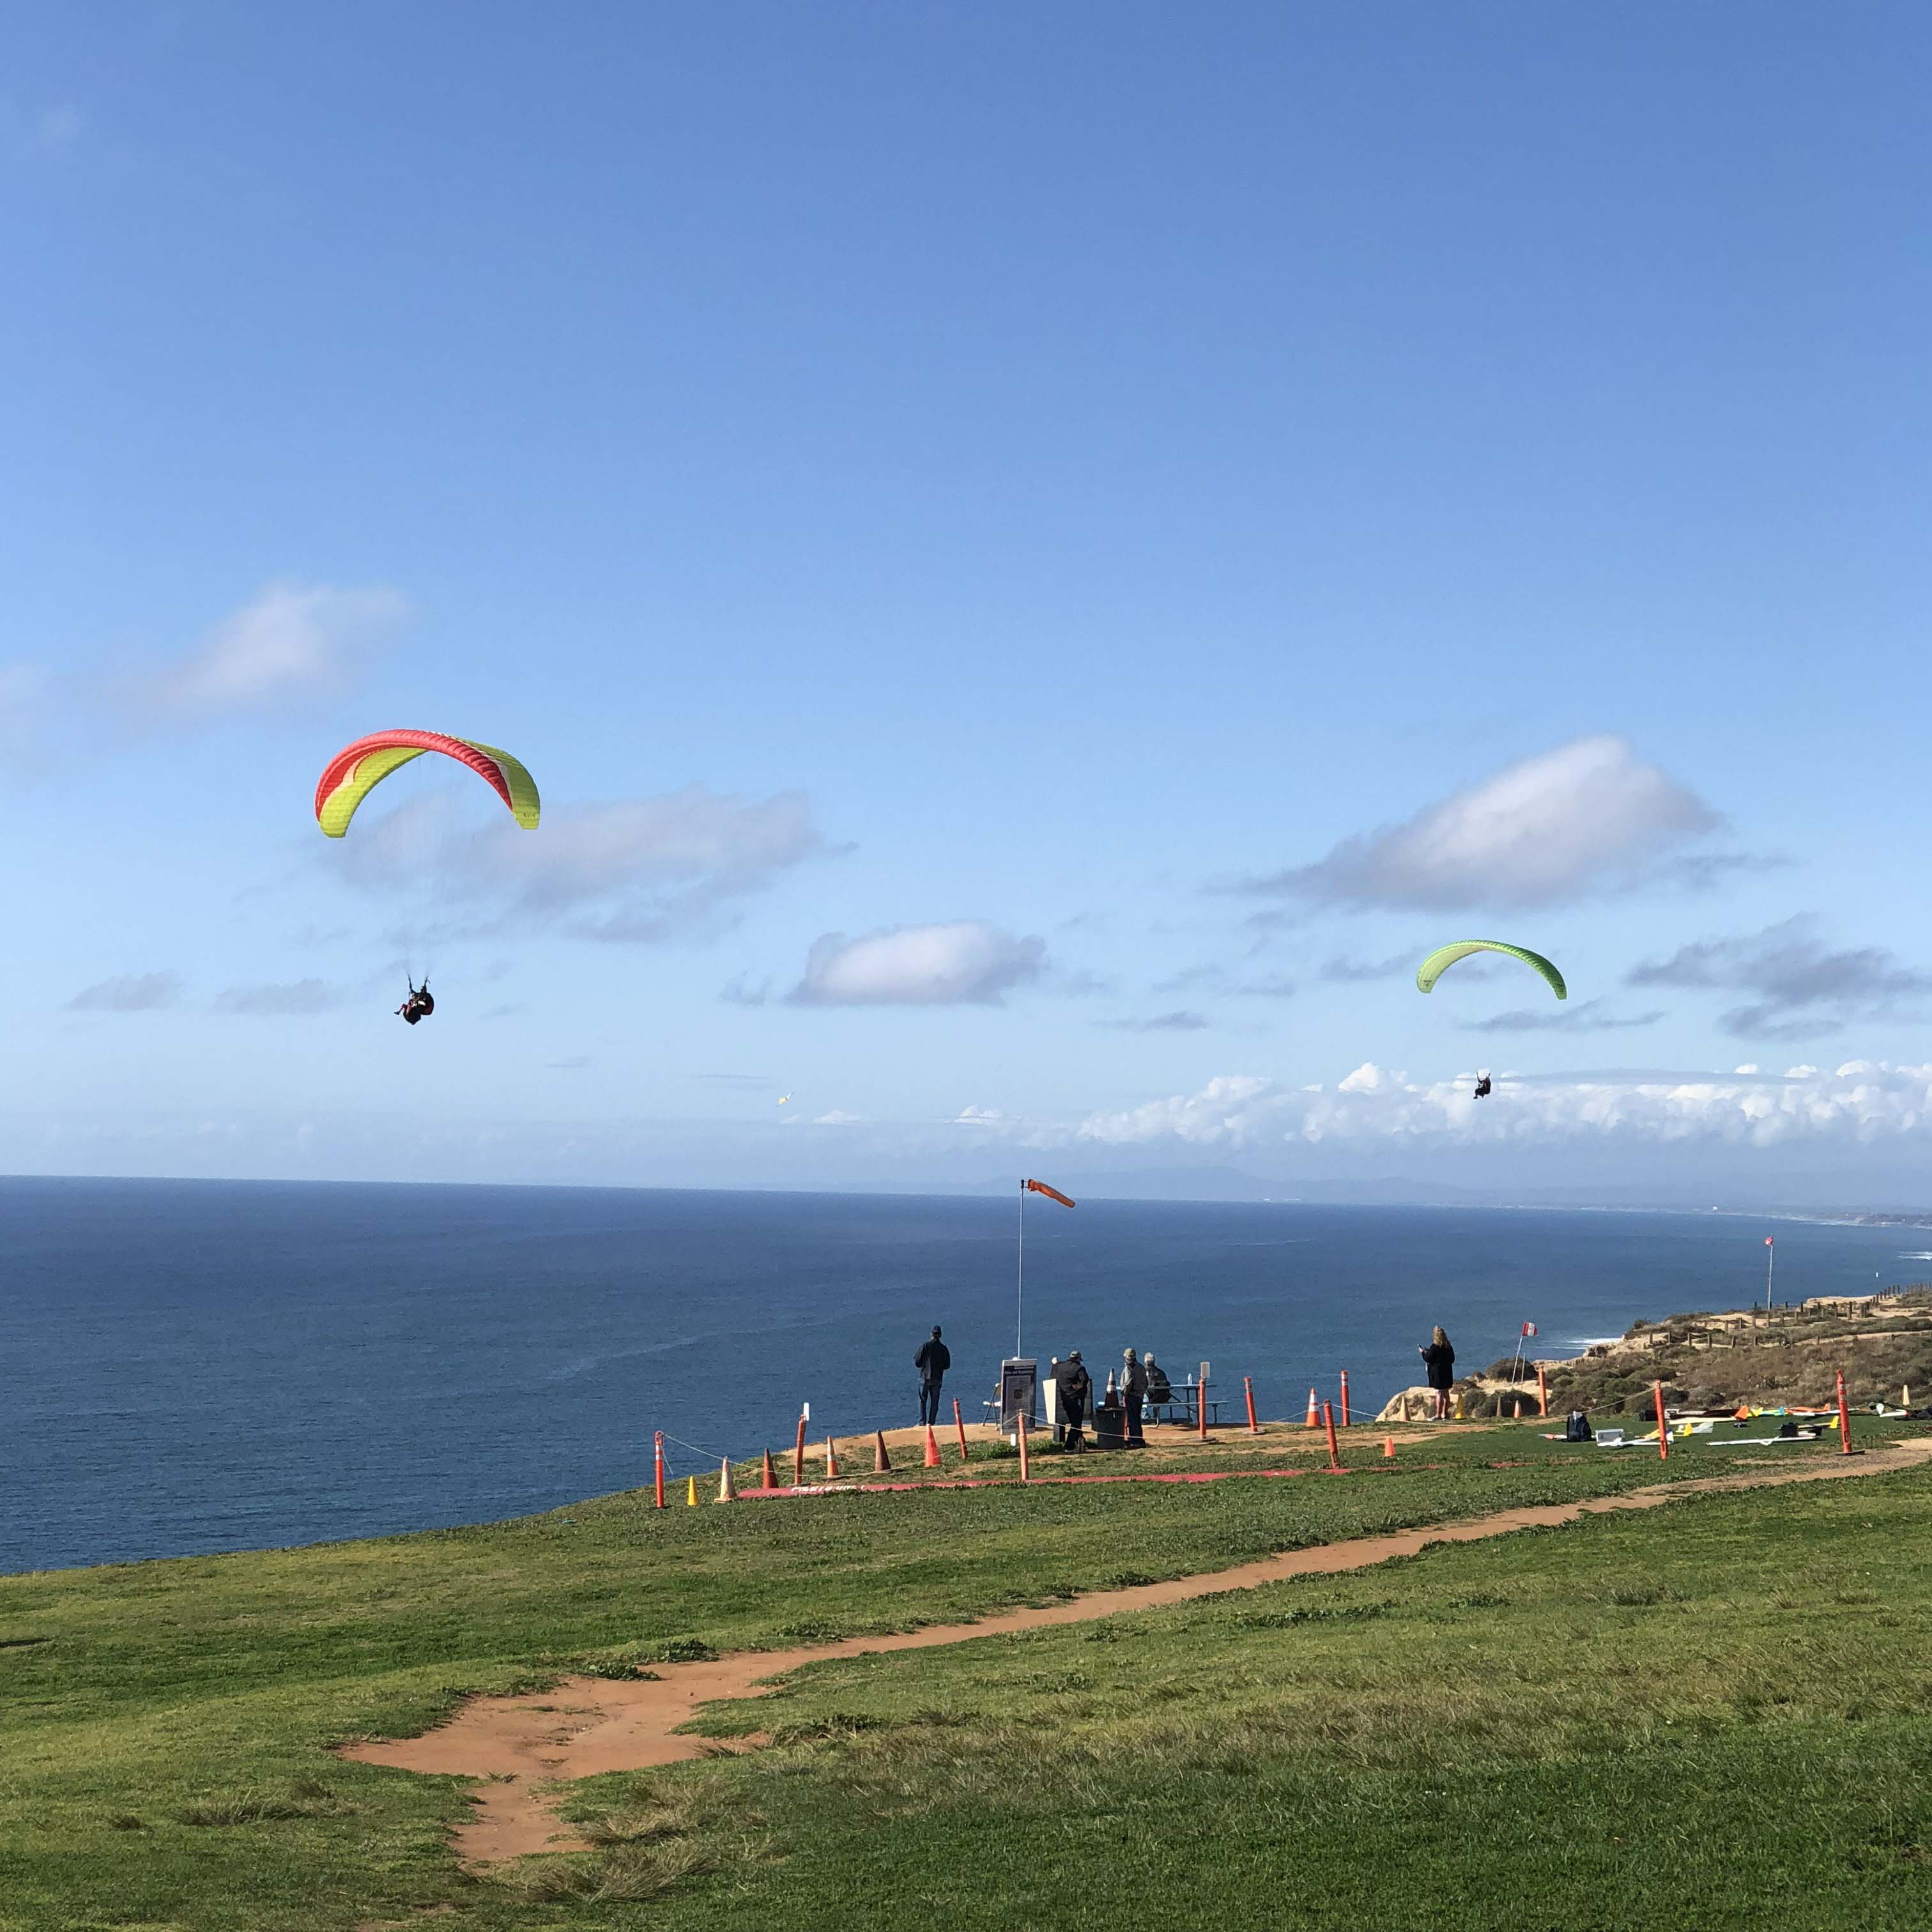 Gliderport at the Torrey Pines - Photo by Outside Suburbia